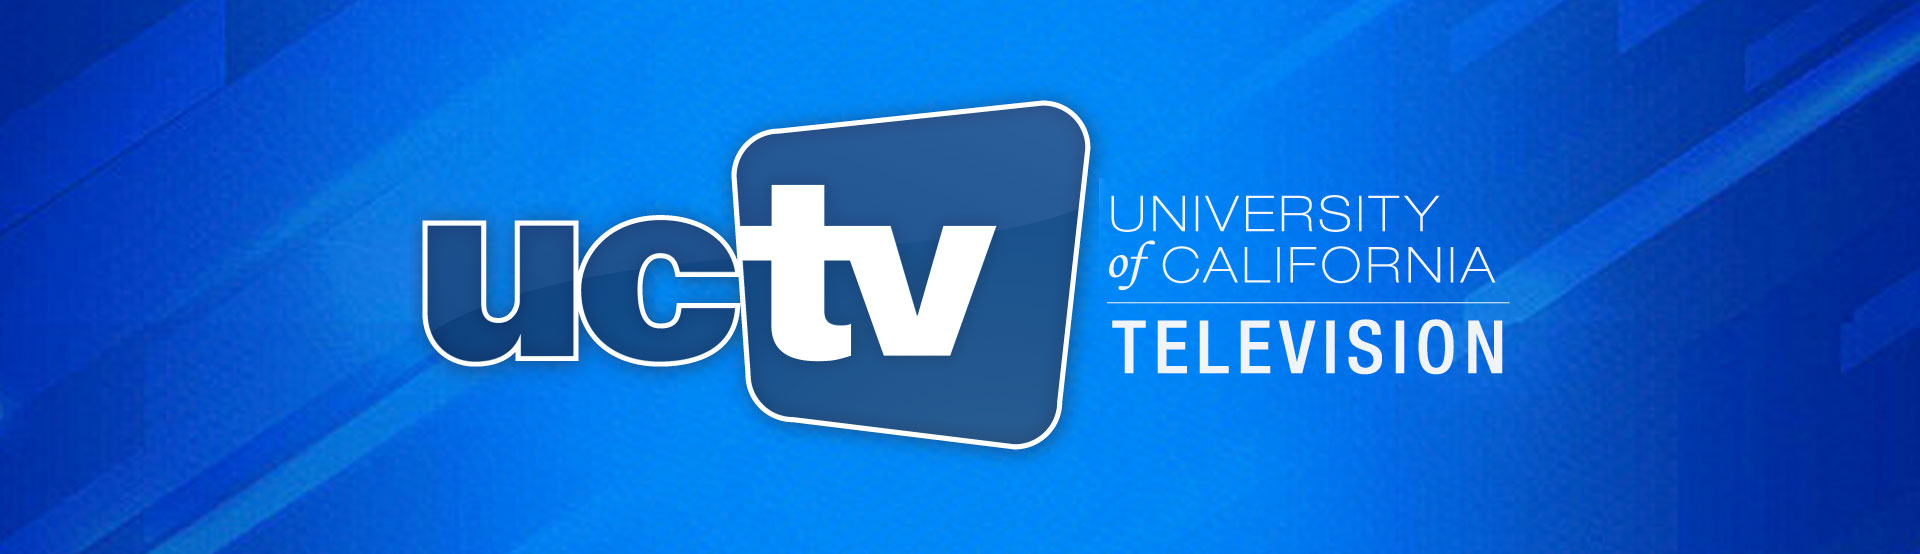 Image for University Of California Television